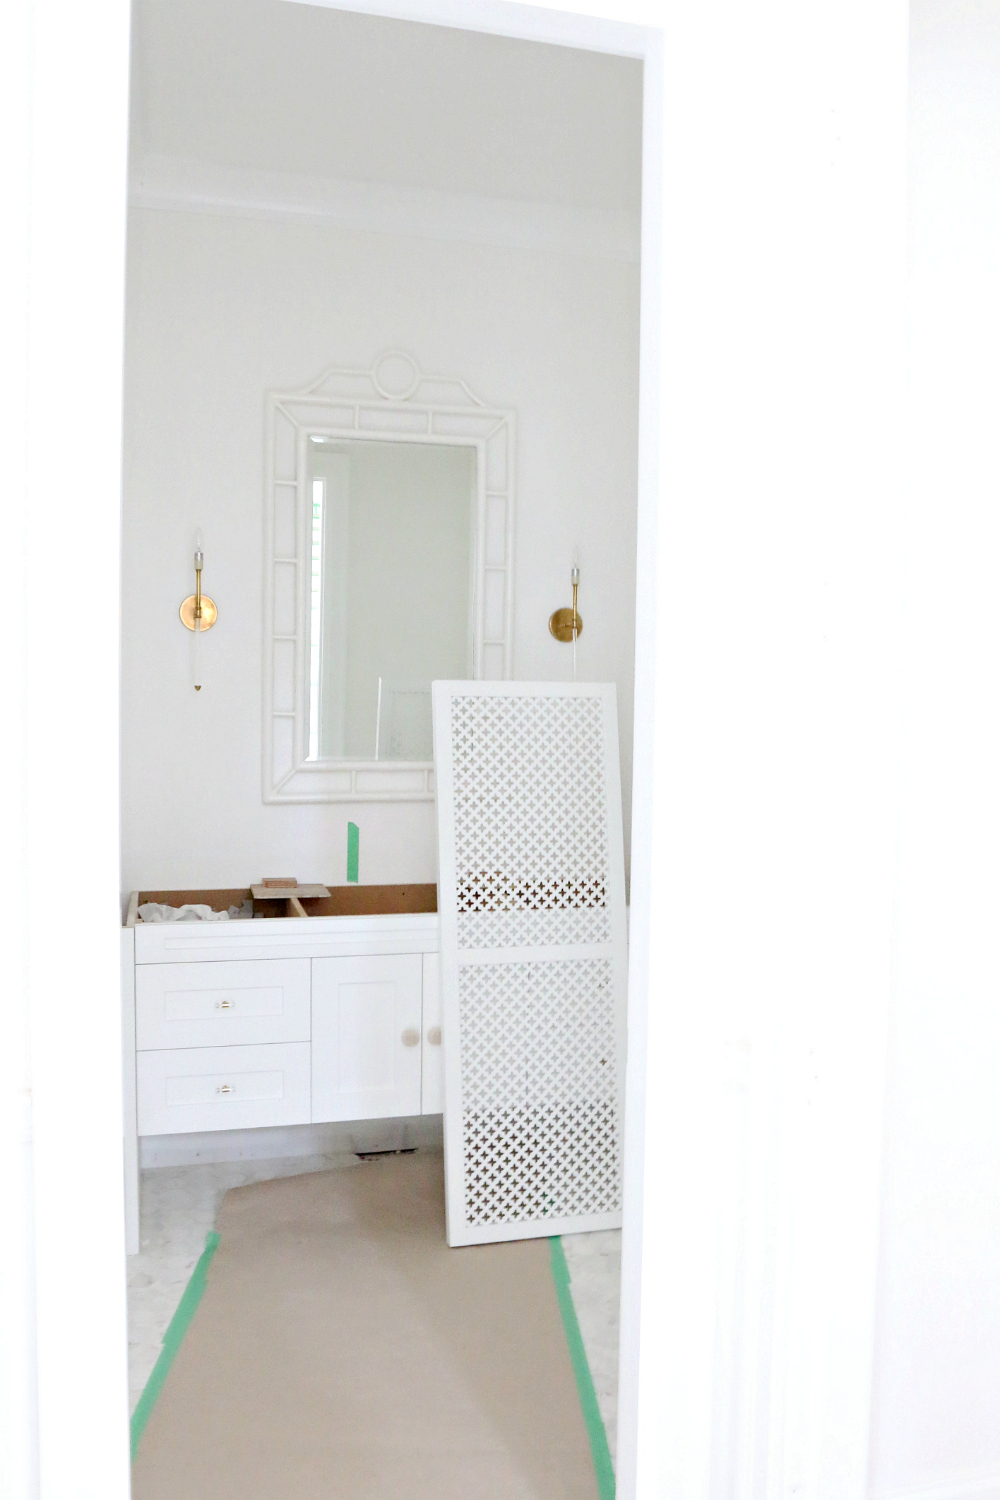 Powder room New Build Monika Hibbs